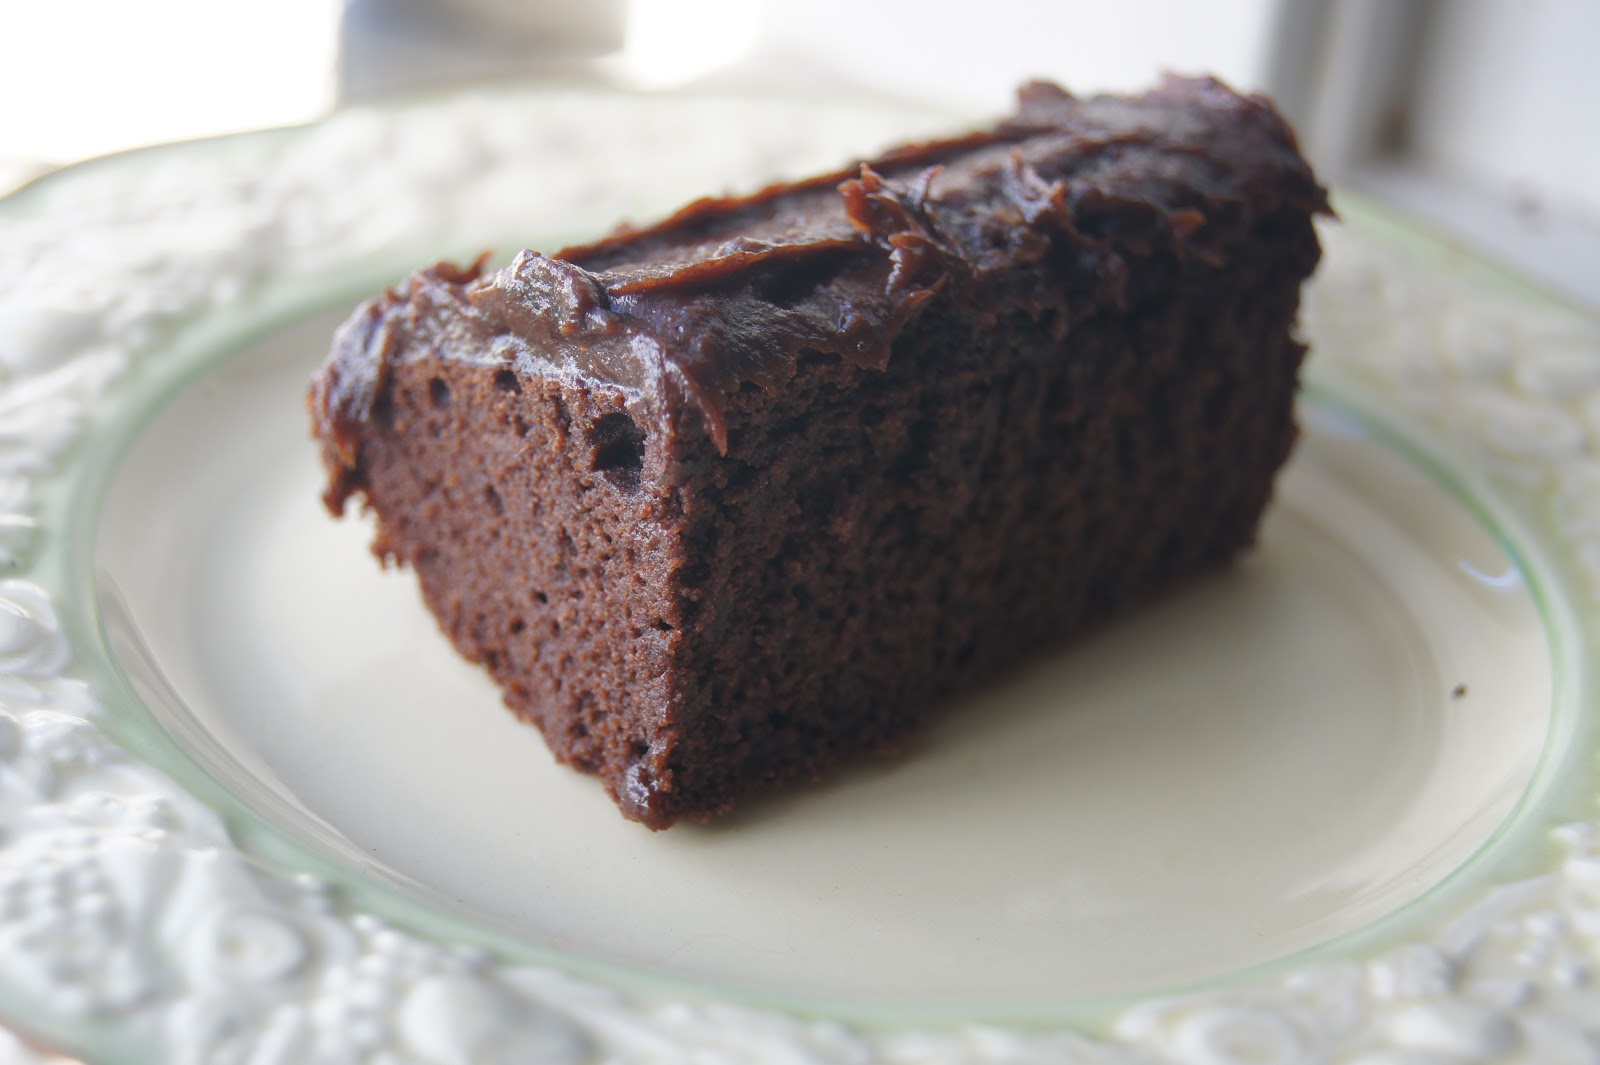 Fluffy Gluten-free Chocolate Cake with Sugar-Free Chocolate Frosting